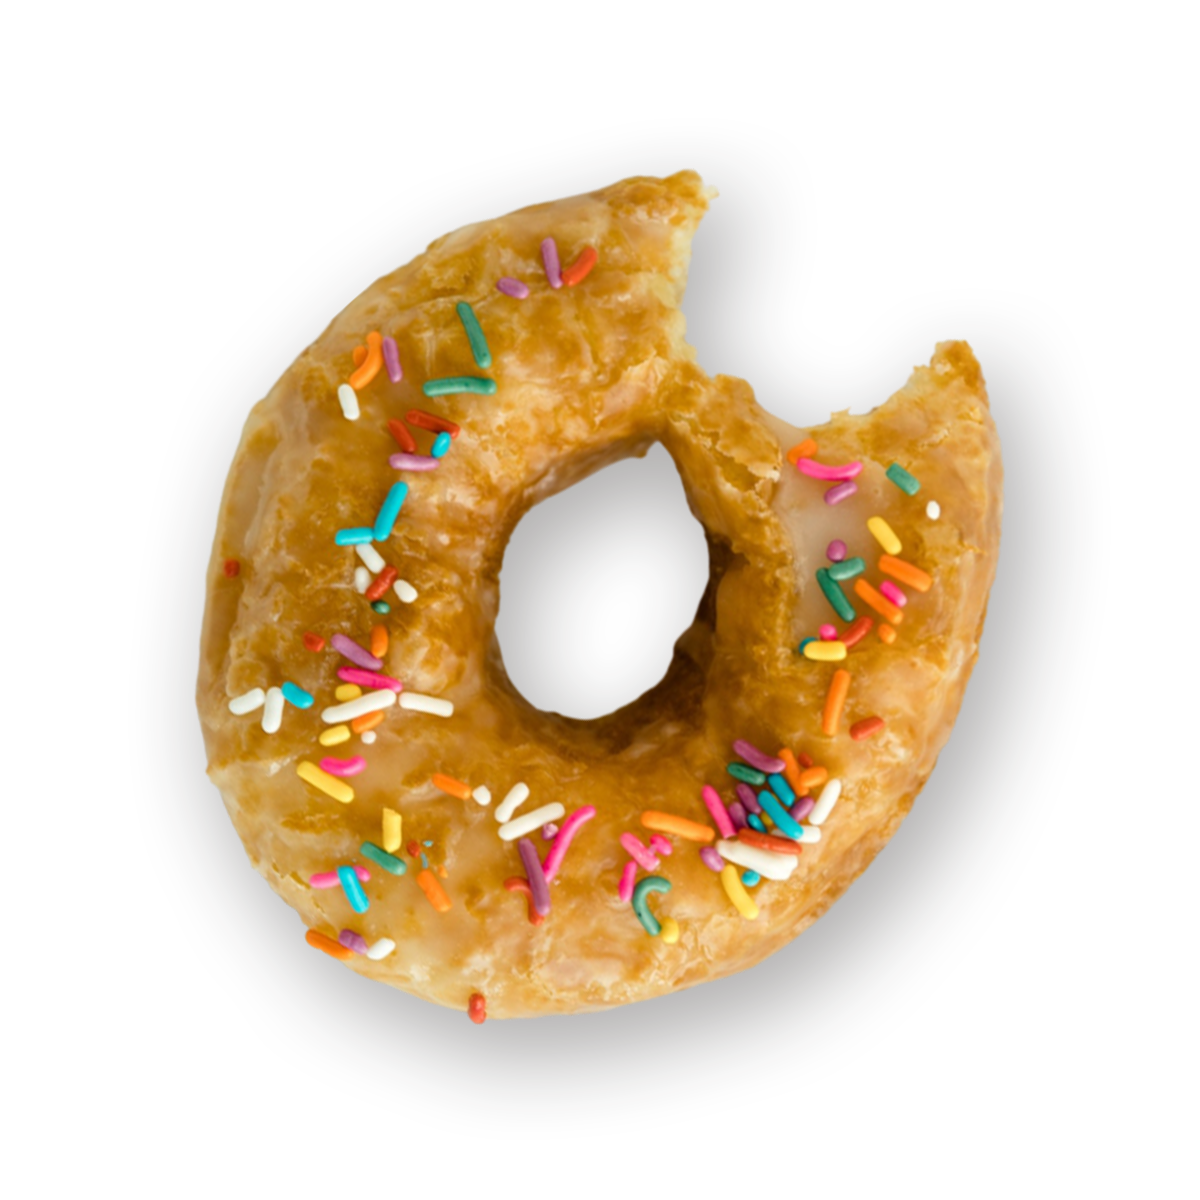 Sprinkle donut with a bite taken out